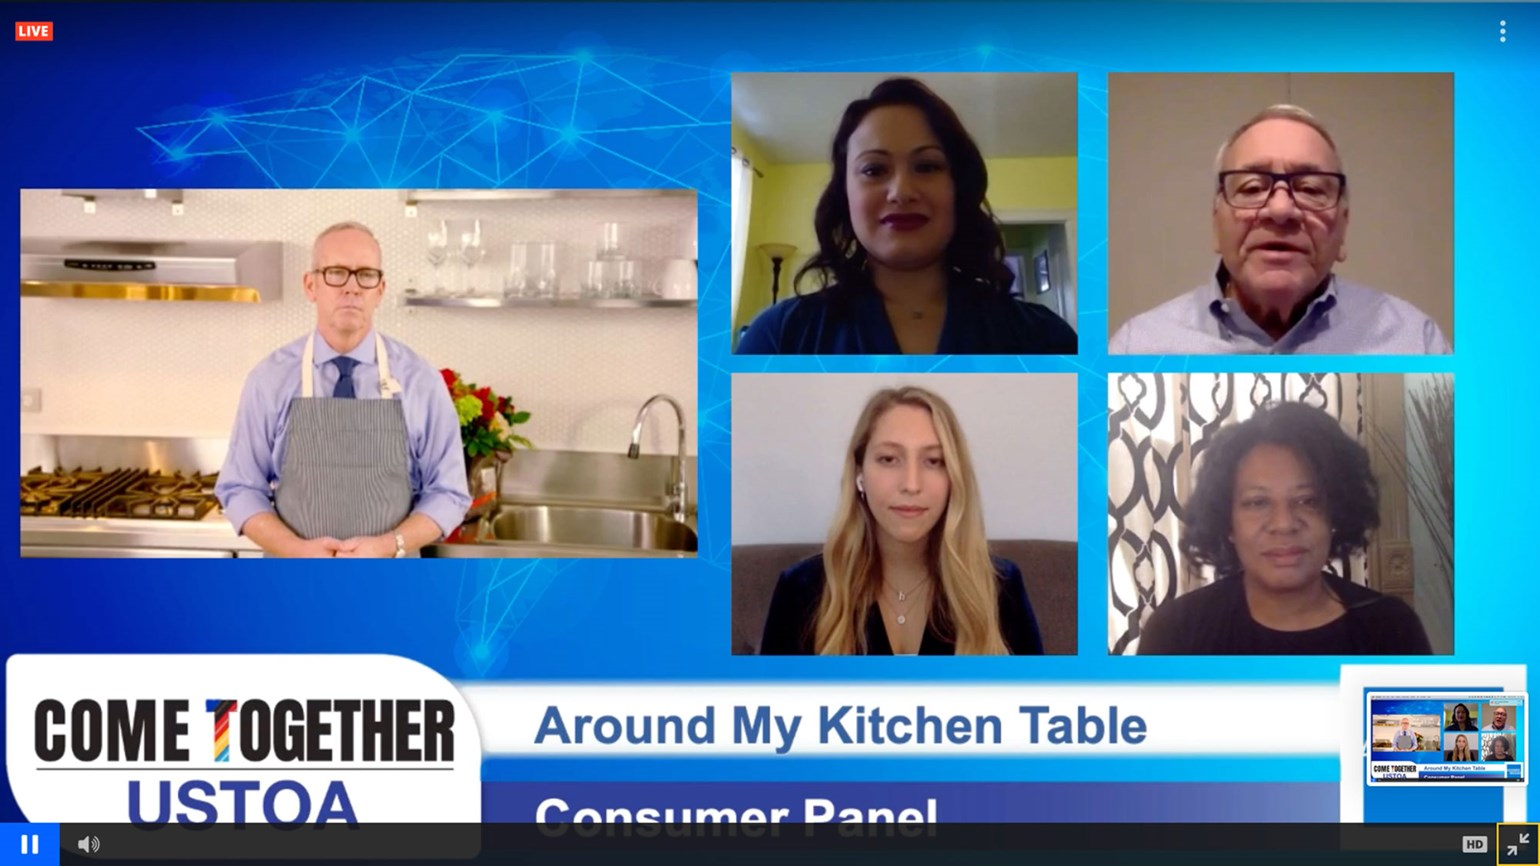 Consumers share their thoughts on travel at USTOA's 'kitchen table'